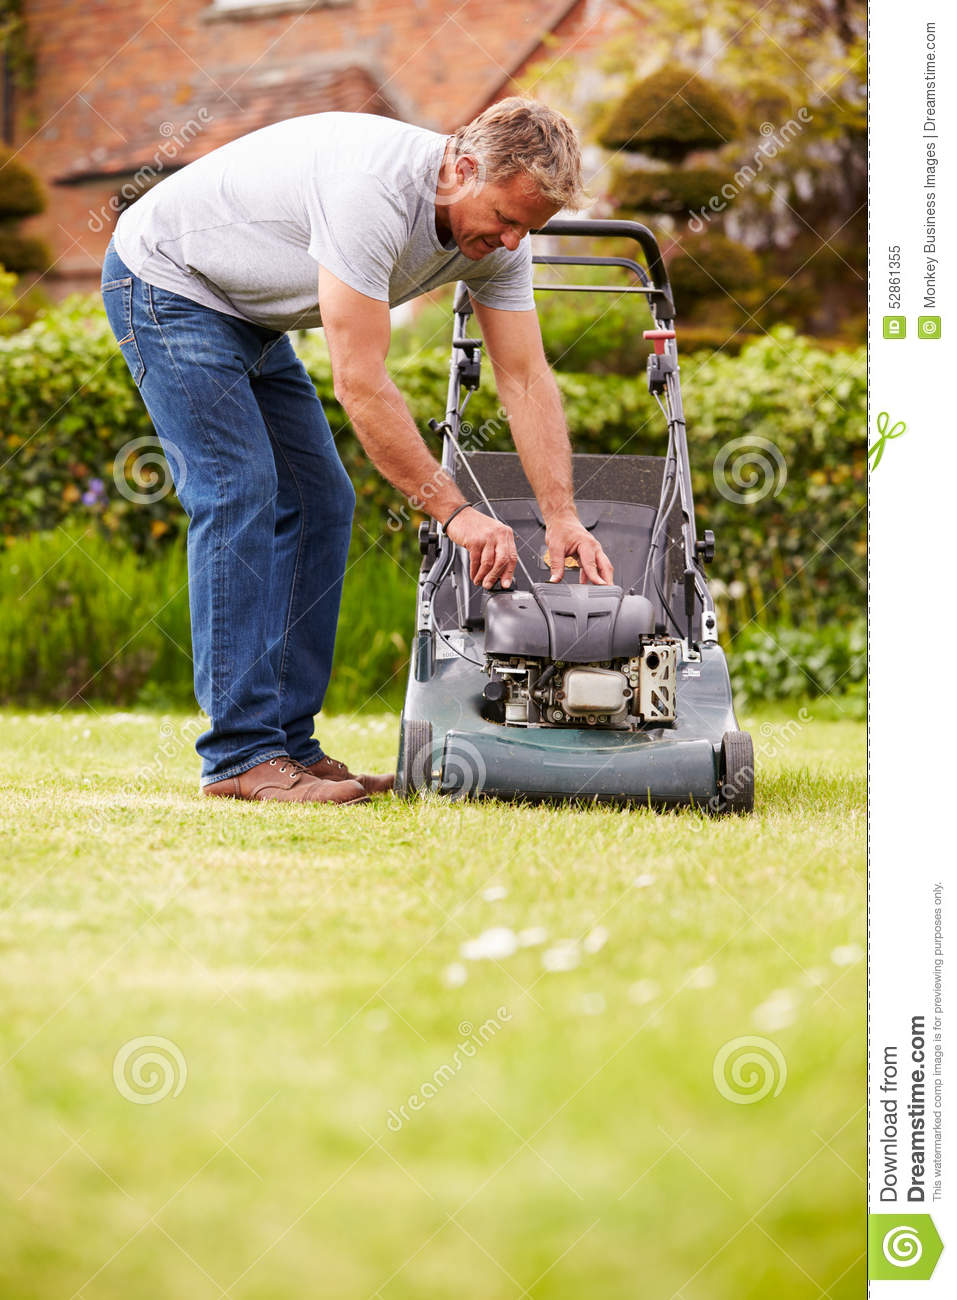 Young man mowing the grass stock image. Image of back